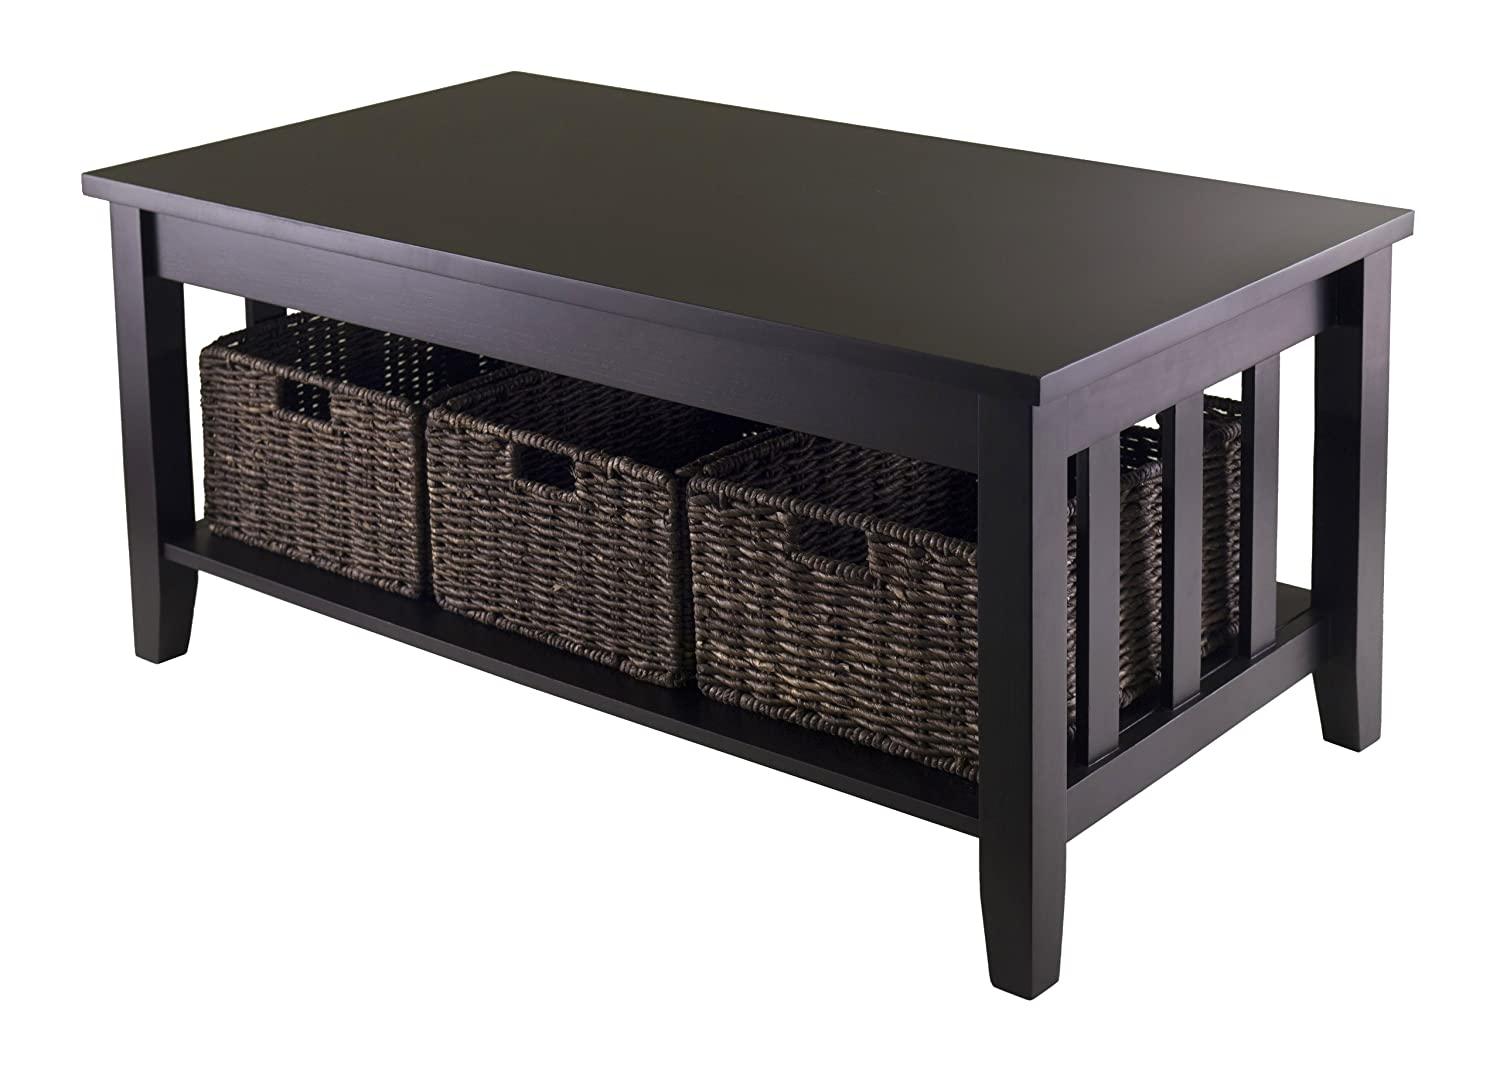 Cocktail Table With Storage Home Decor And Furniture Deals